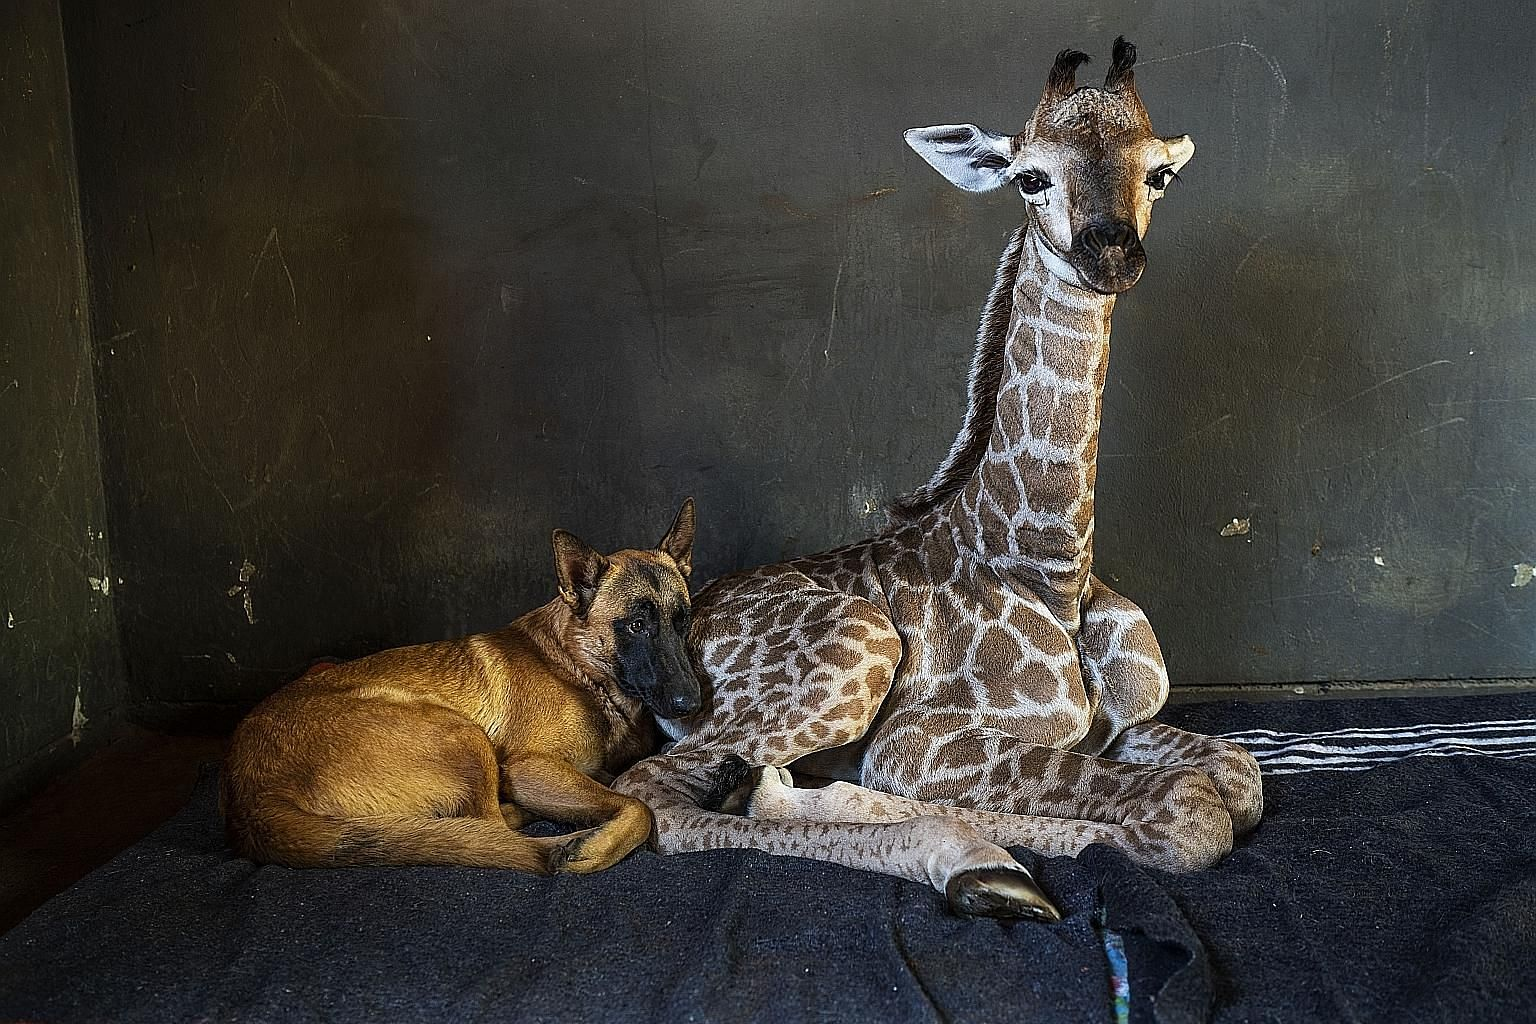 Hunter, a young Belgian Malinois, and his giraffe friend Jazz at The Rhino Orphanage in the Limpopo province of South Africa, in a photo taken on Nov 22. PHOTO: ASSOCIATED PRESS